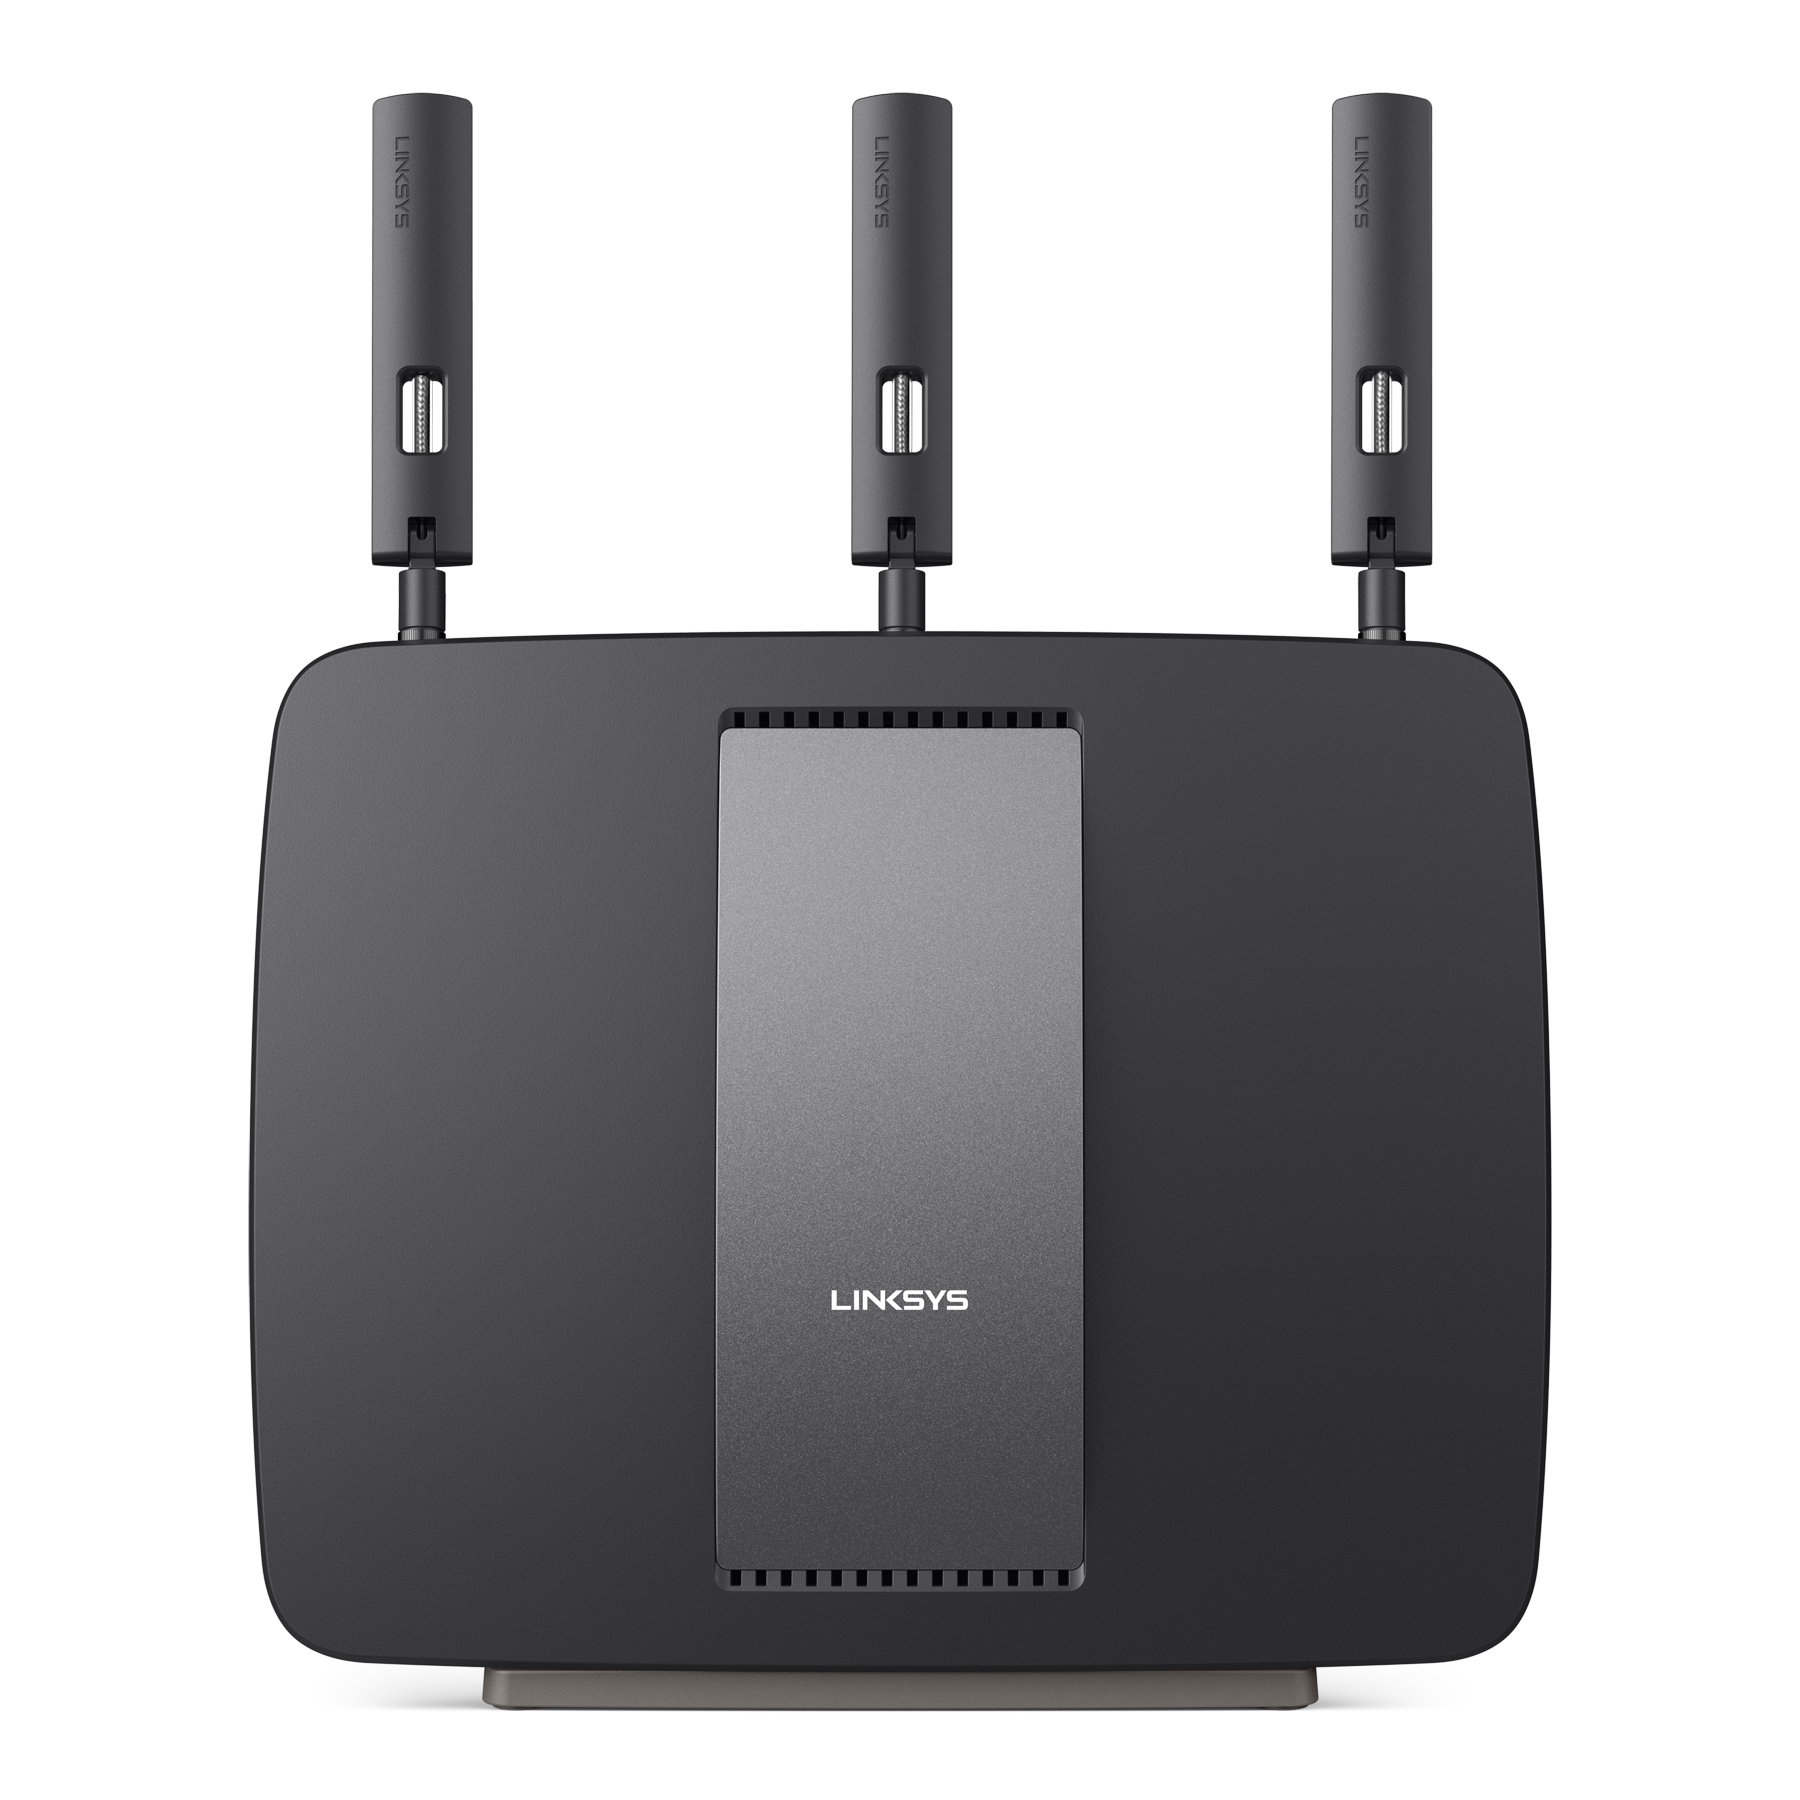 Linksys AC3200 Tri-Band Smart Wi-Fi Router with Gigabit and USB, Designed for Device-Heavy Homes, Smart Wi-Fi App Enabled to Control Your Network from Anywhere (EA9200) by Linksys